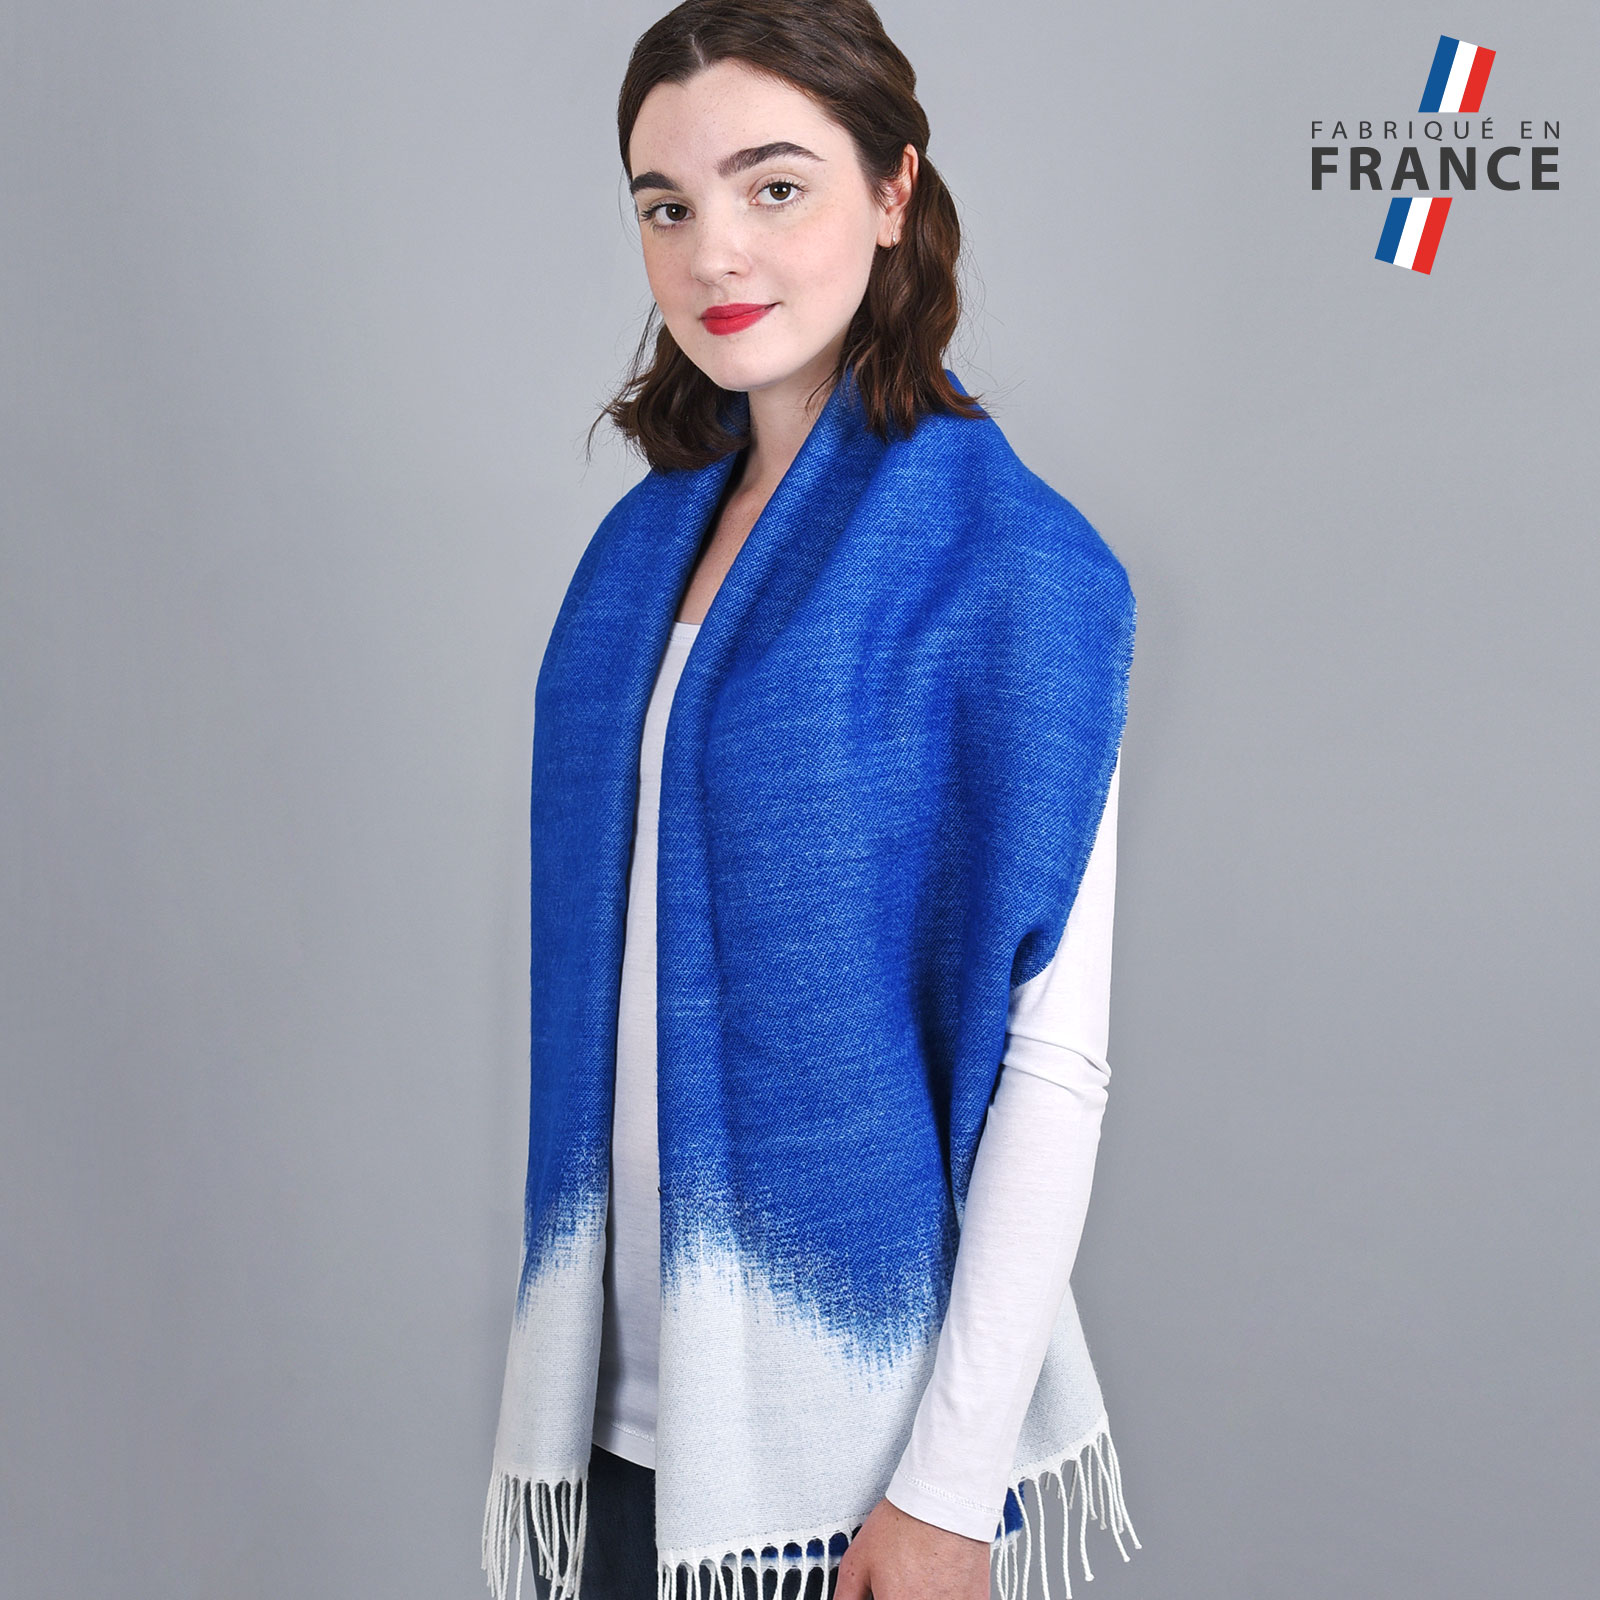 AT-04164-VF16-2-LB_FR-chale-femme-bleu-degrade